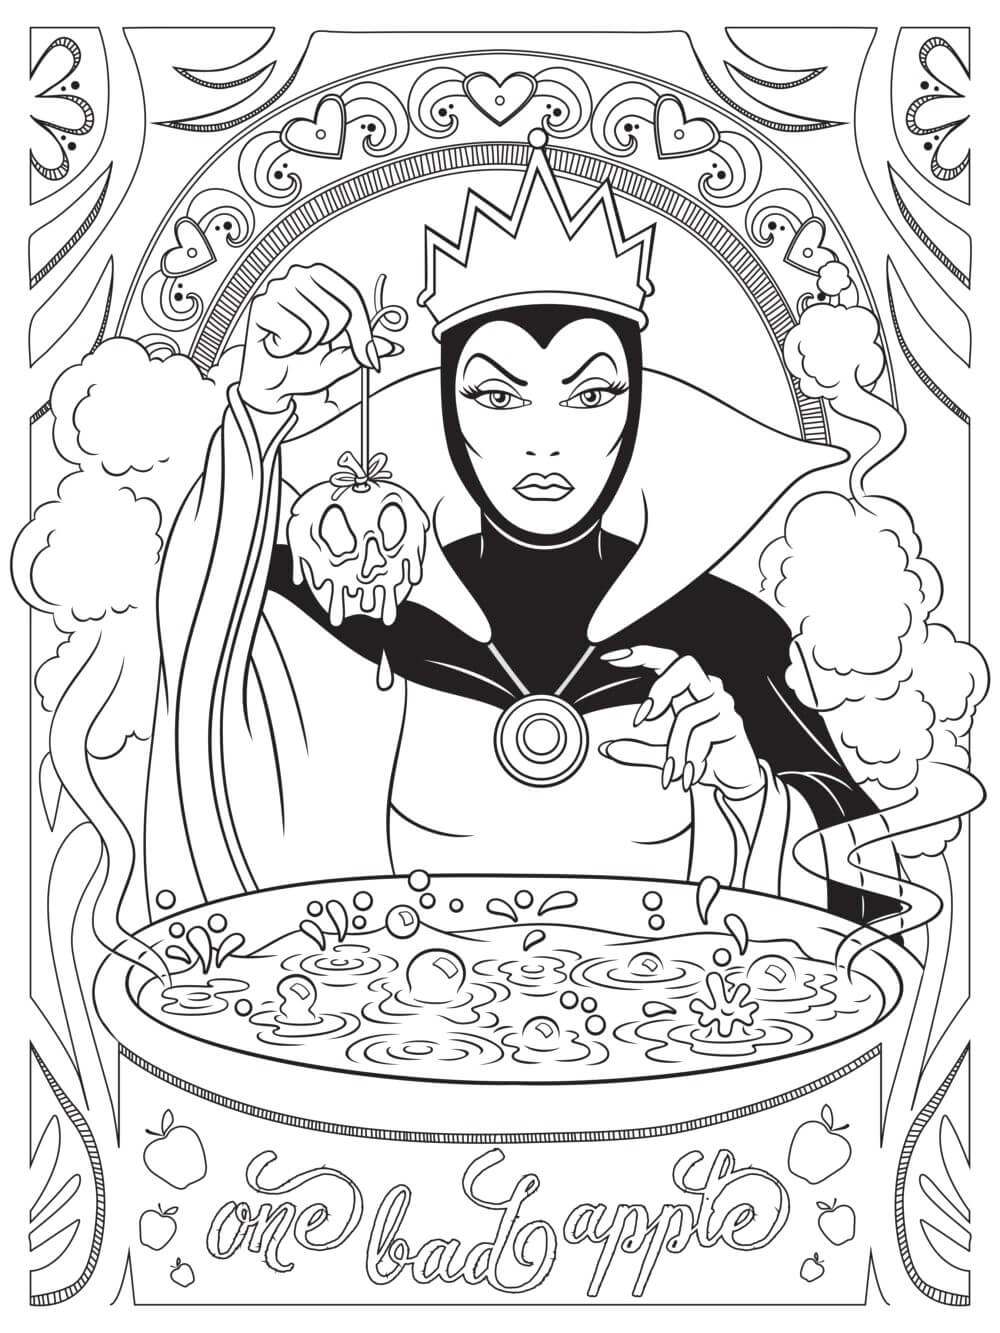 Evil Queen Disney Adult Coloring Page – coloring.rocks!